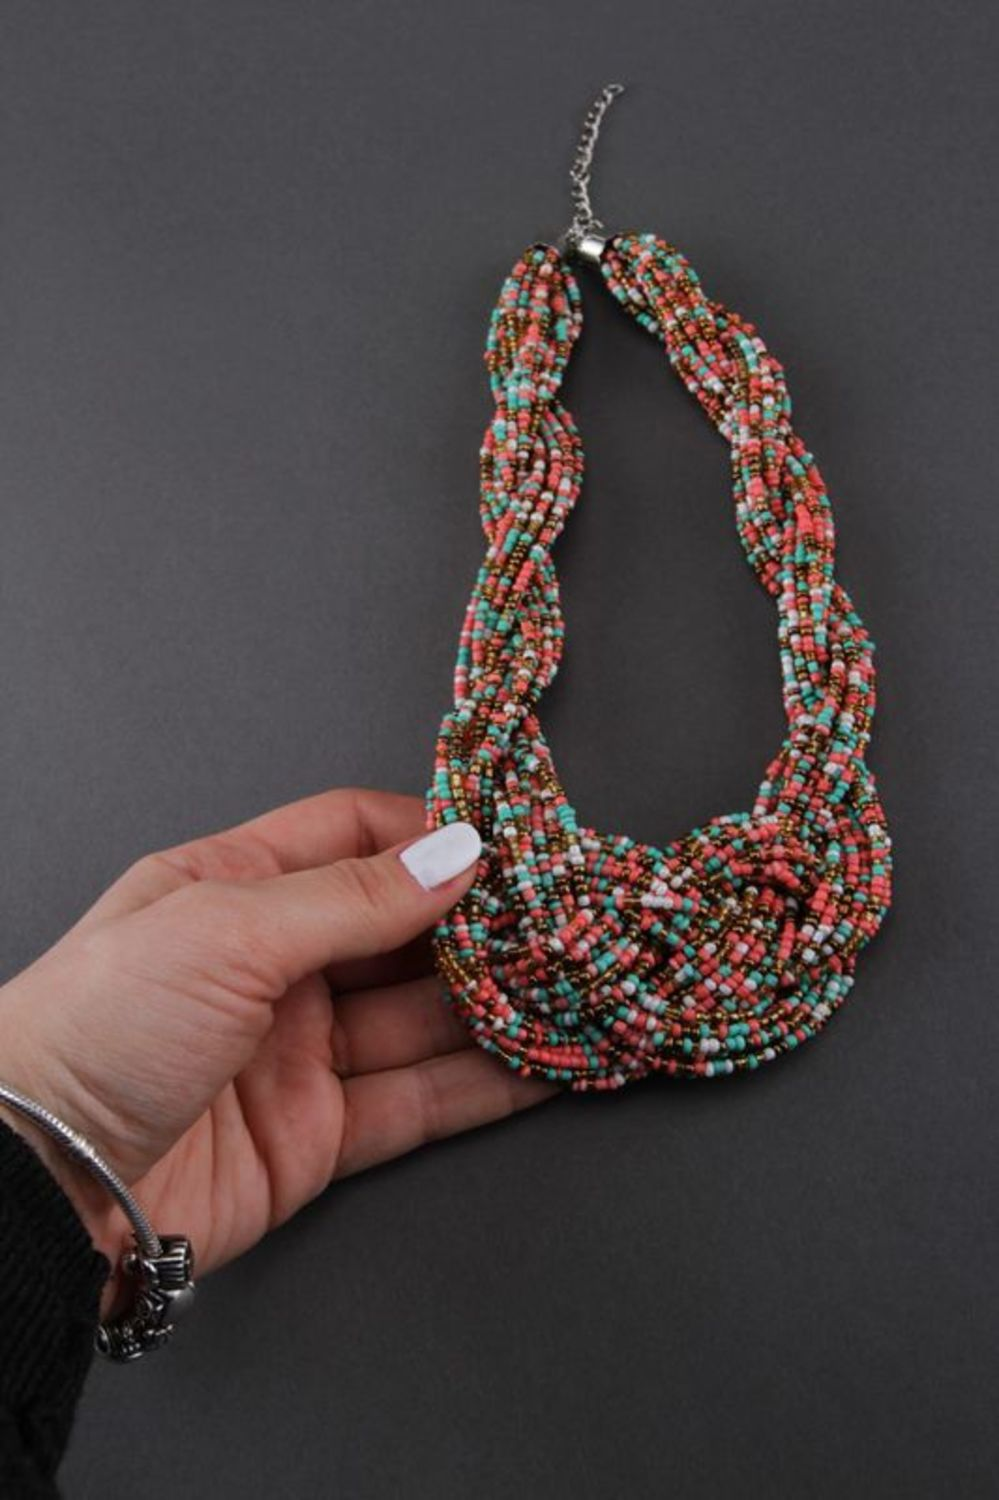 Necklace made of multicoloured beads photo 4